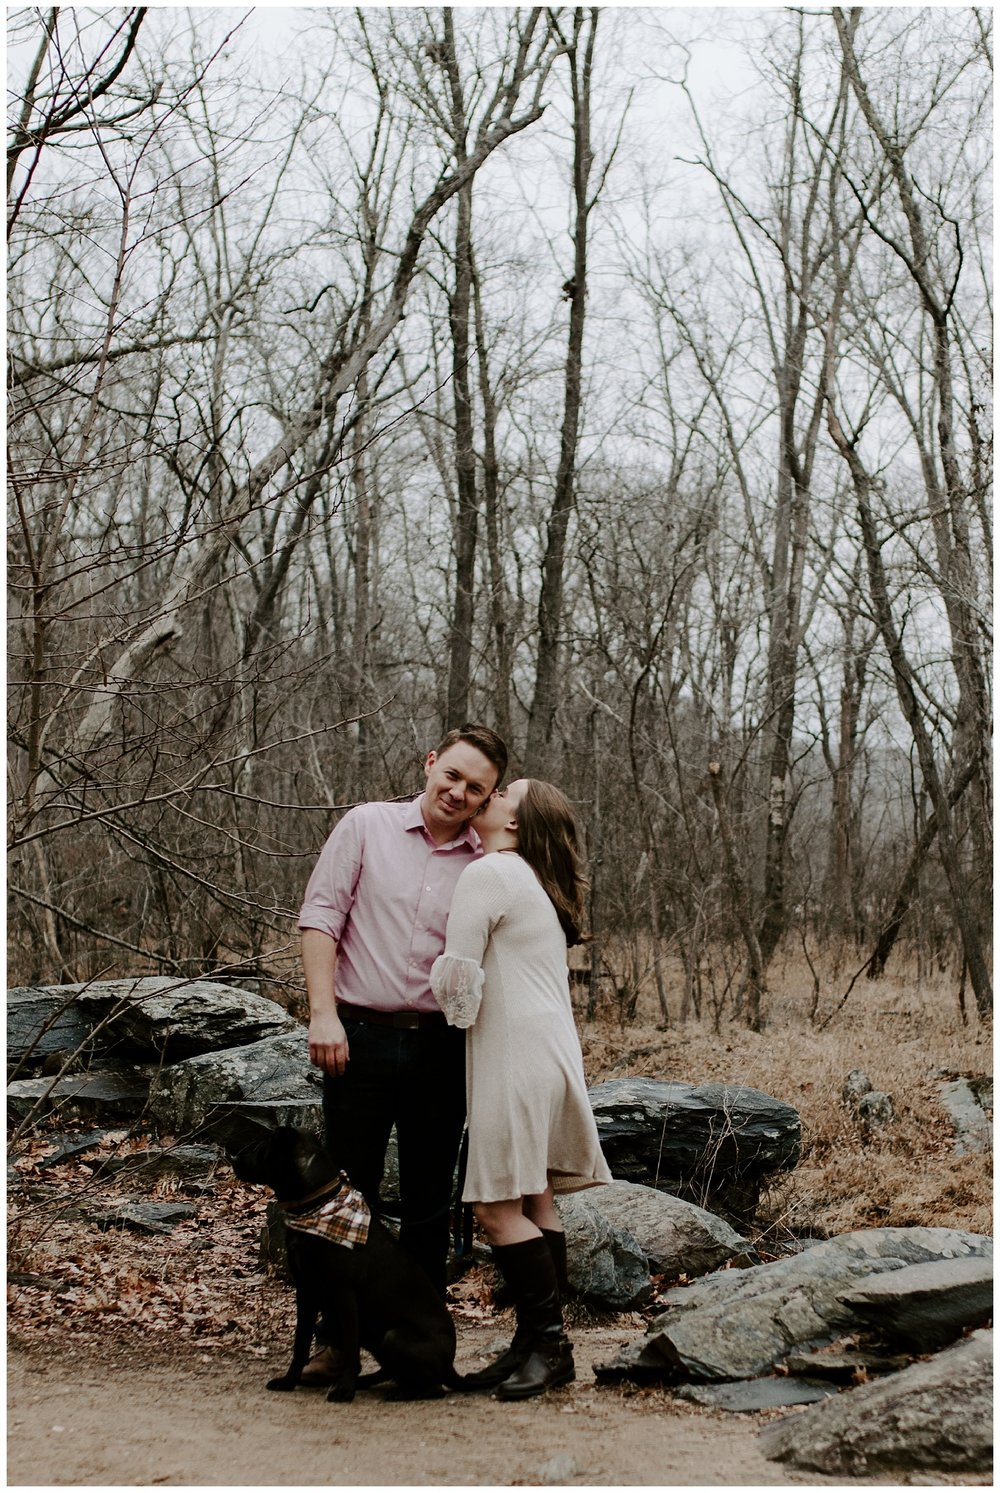 Elizabeth M Photography Norther Virginia Wedding Photographer Lindsey and Peter Engagement Session_0066.jpg